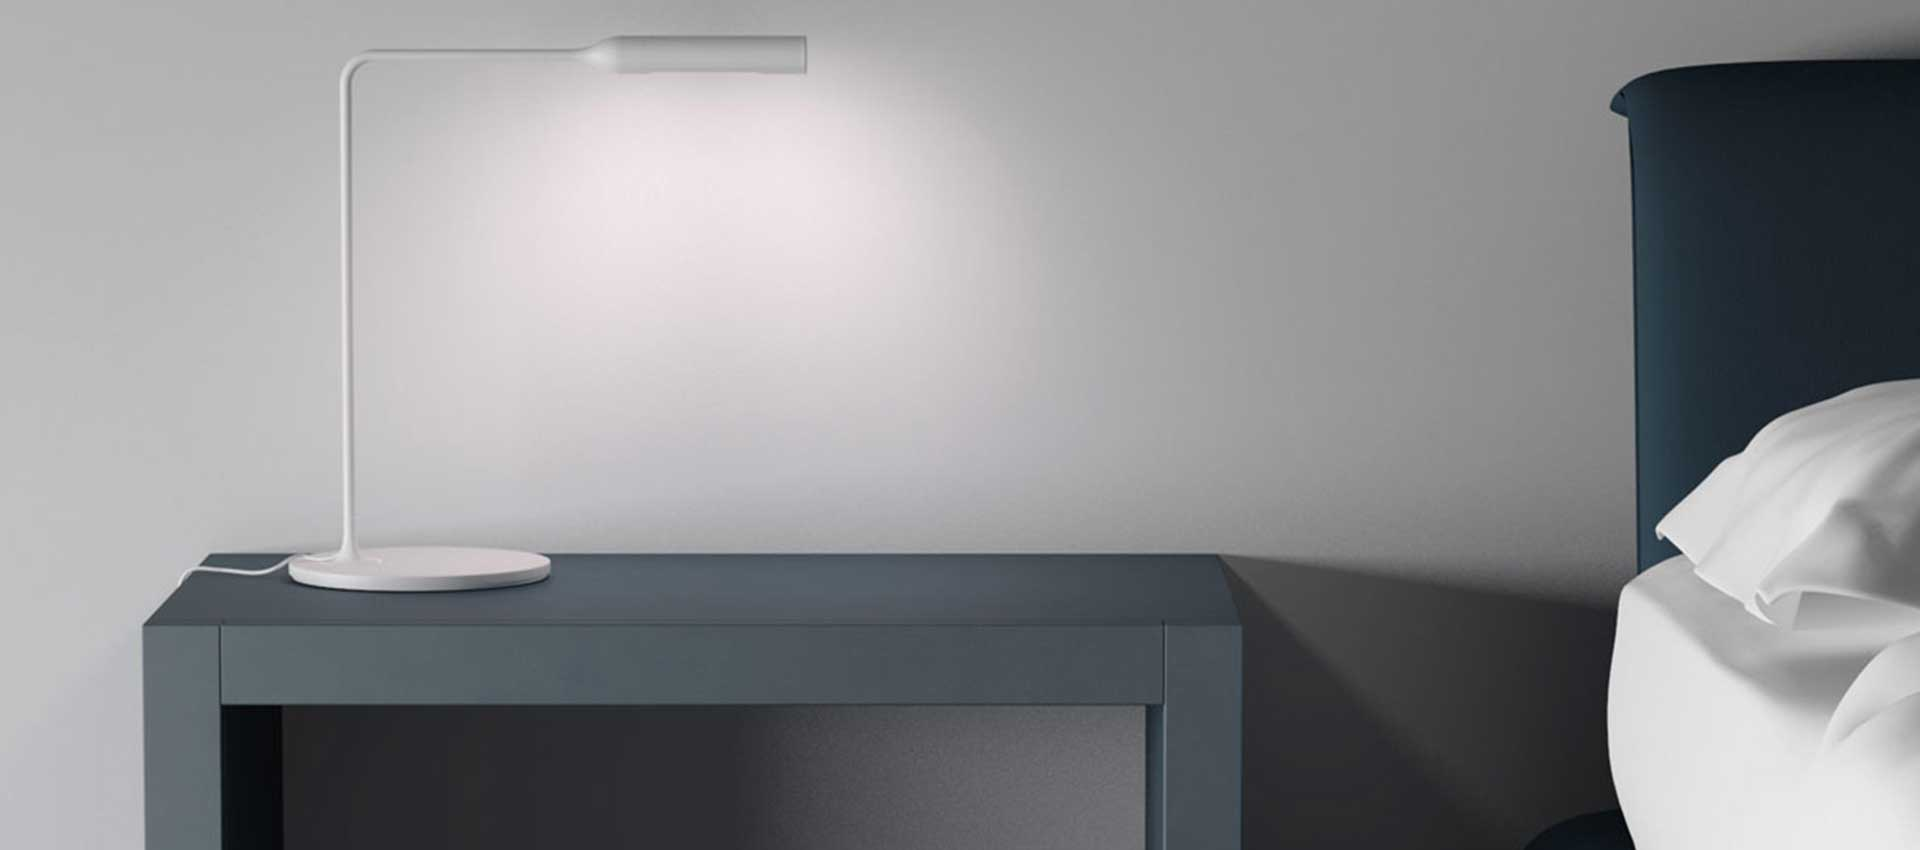 Flo desk lamp by Foster+Partners